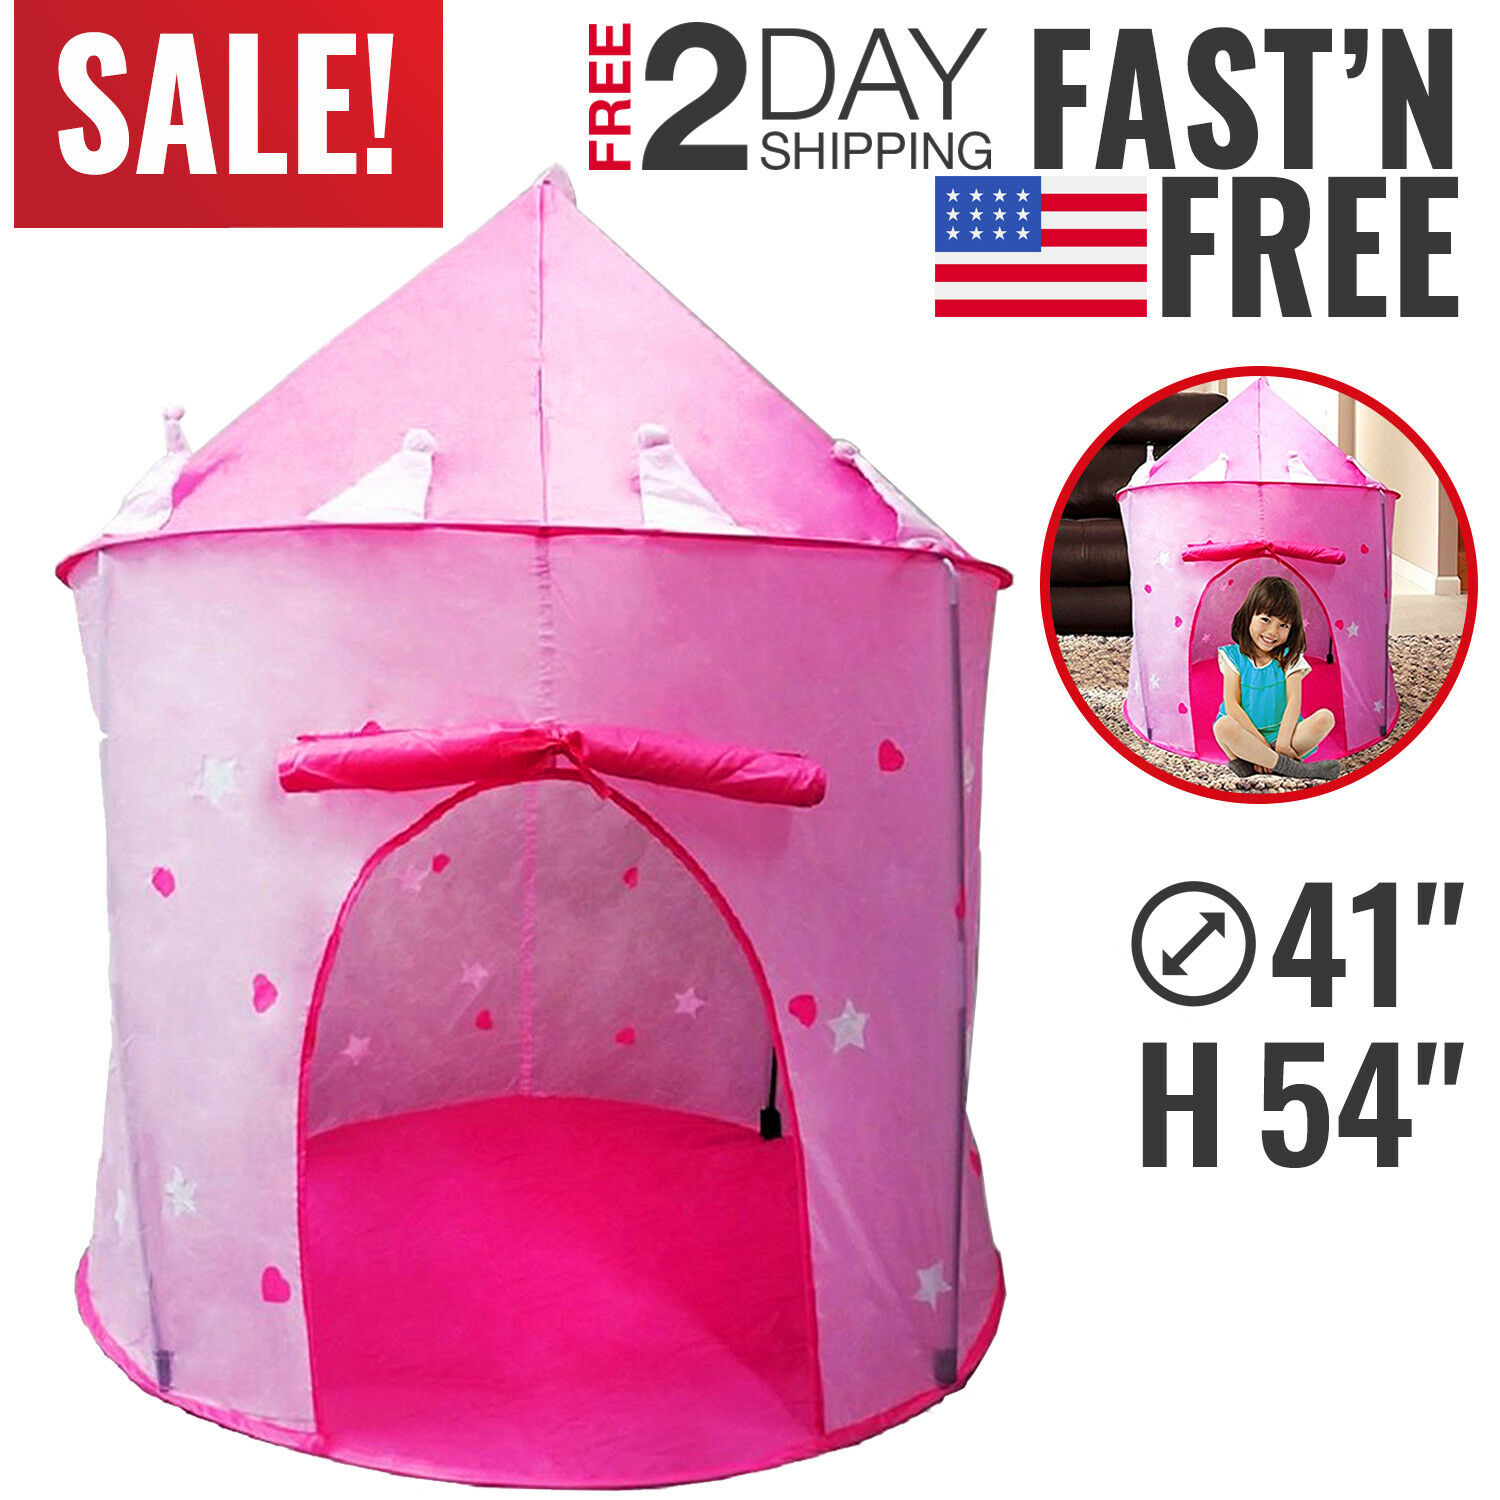 Toys For Girls Play Tent Kids Toddler 4 5 6 7 8 9 Year Old Age Girls Cool Toy  sc 1 st  eBay & Toys For Girls Play Tent Kids Toddler 4 5 6 7 8 9 Year Old Age ...